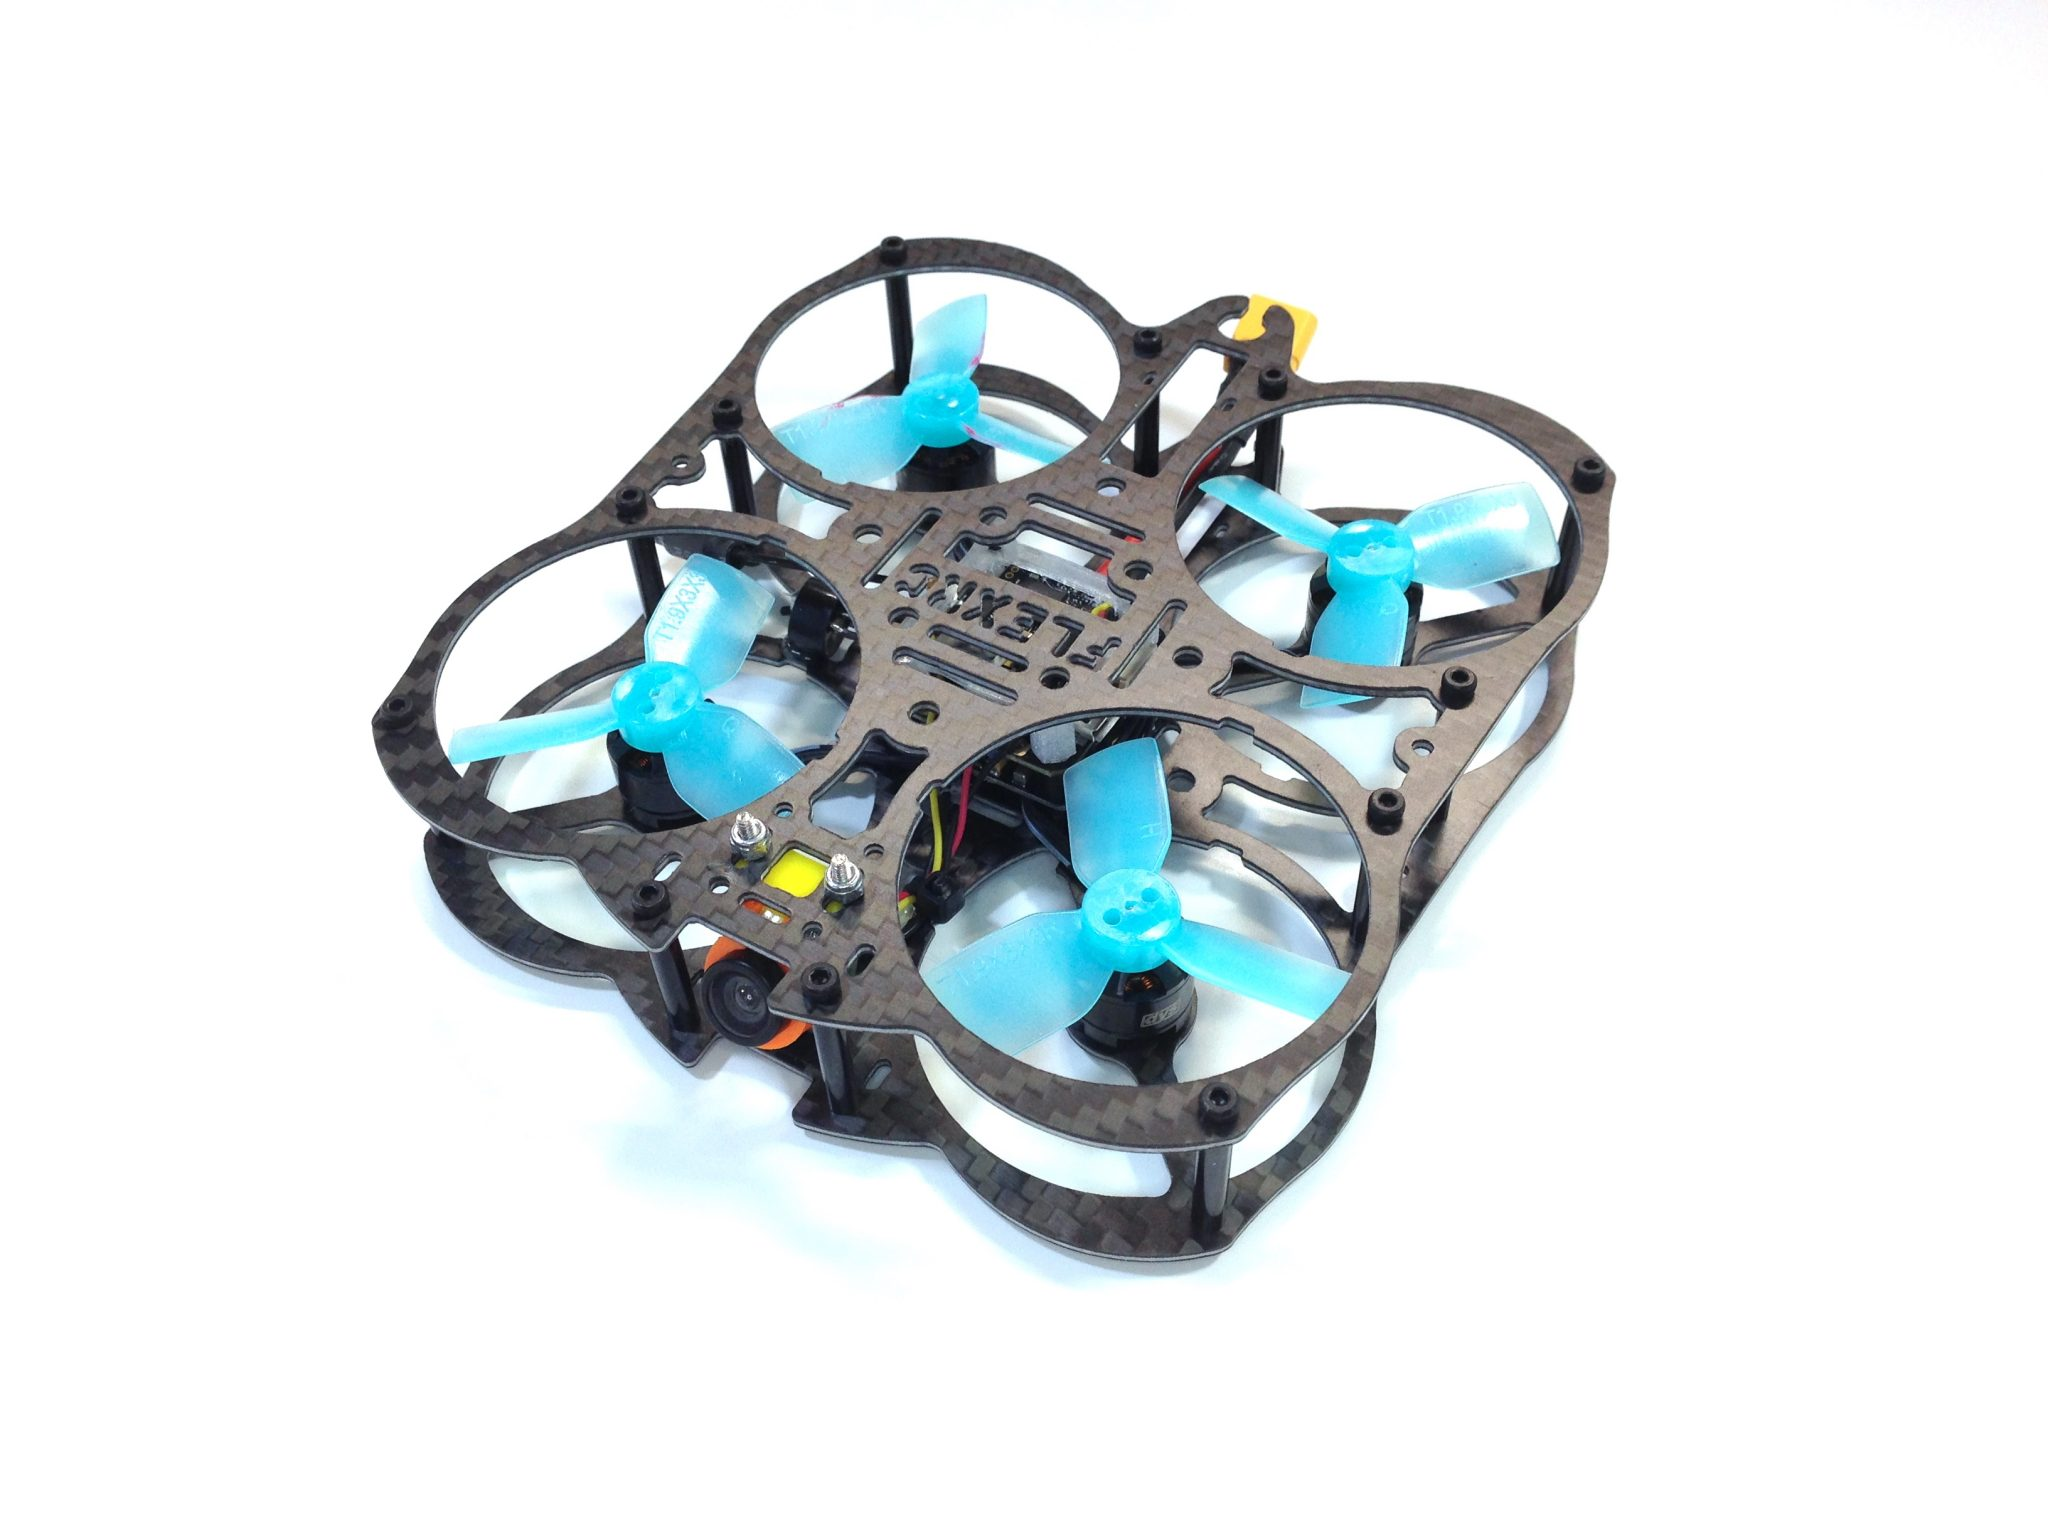 Mini Owl - Extreme - FPV Proximity Racing Drone - DIY Kit